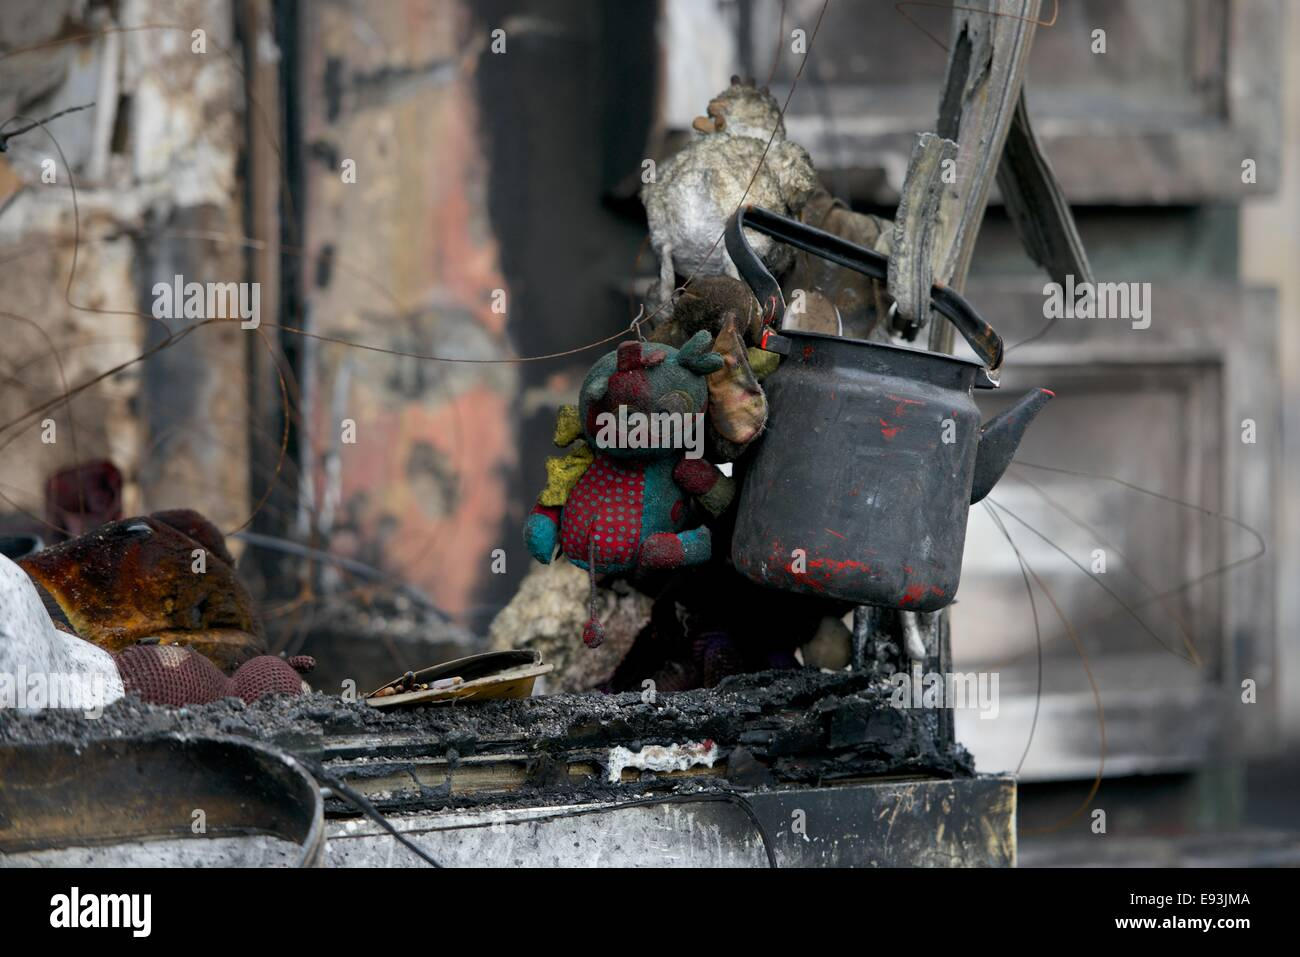 A soot covered teapot and childs knitted toy hang froma burned out shop window in Kiev - Stock Image